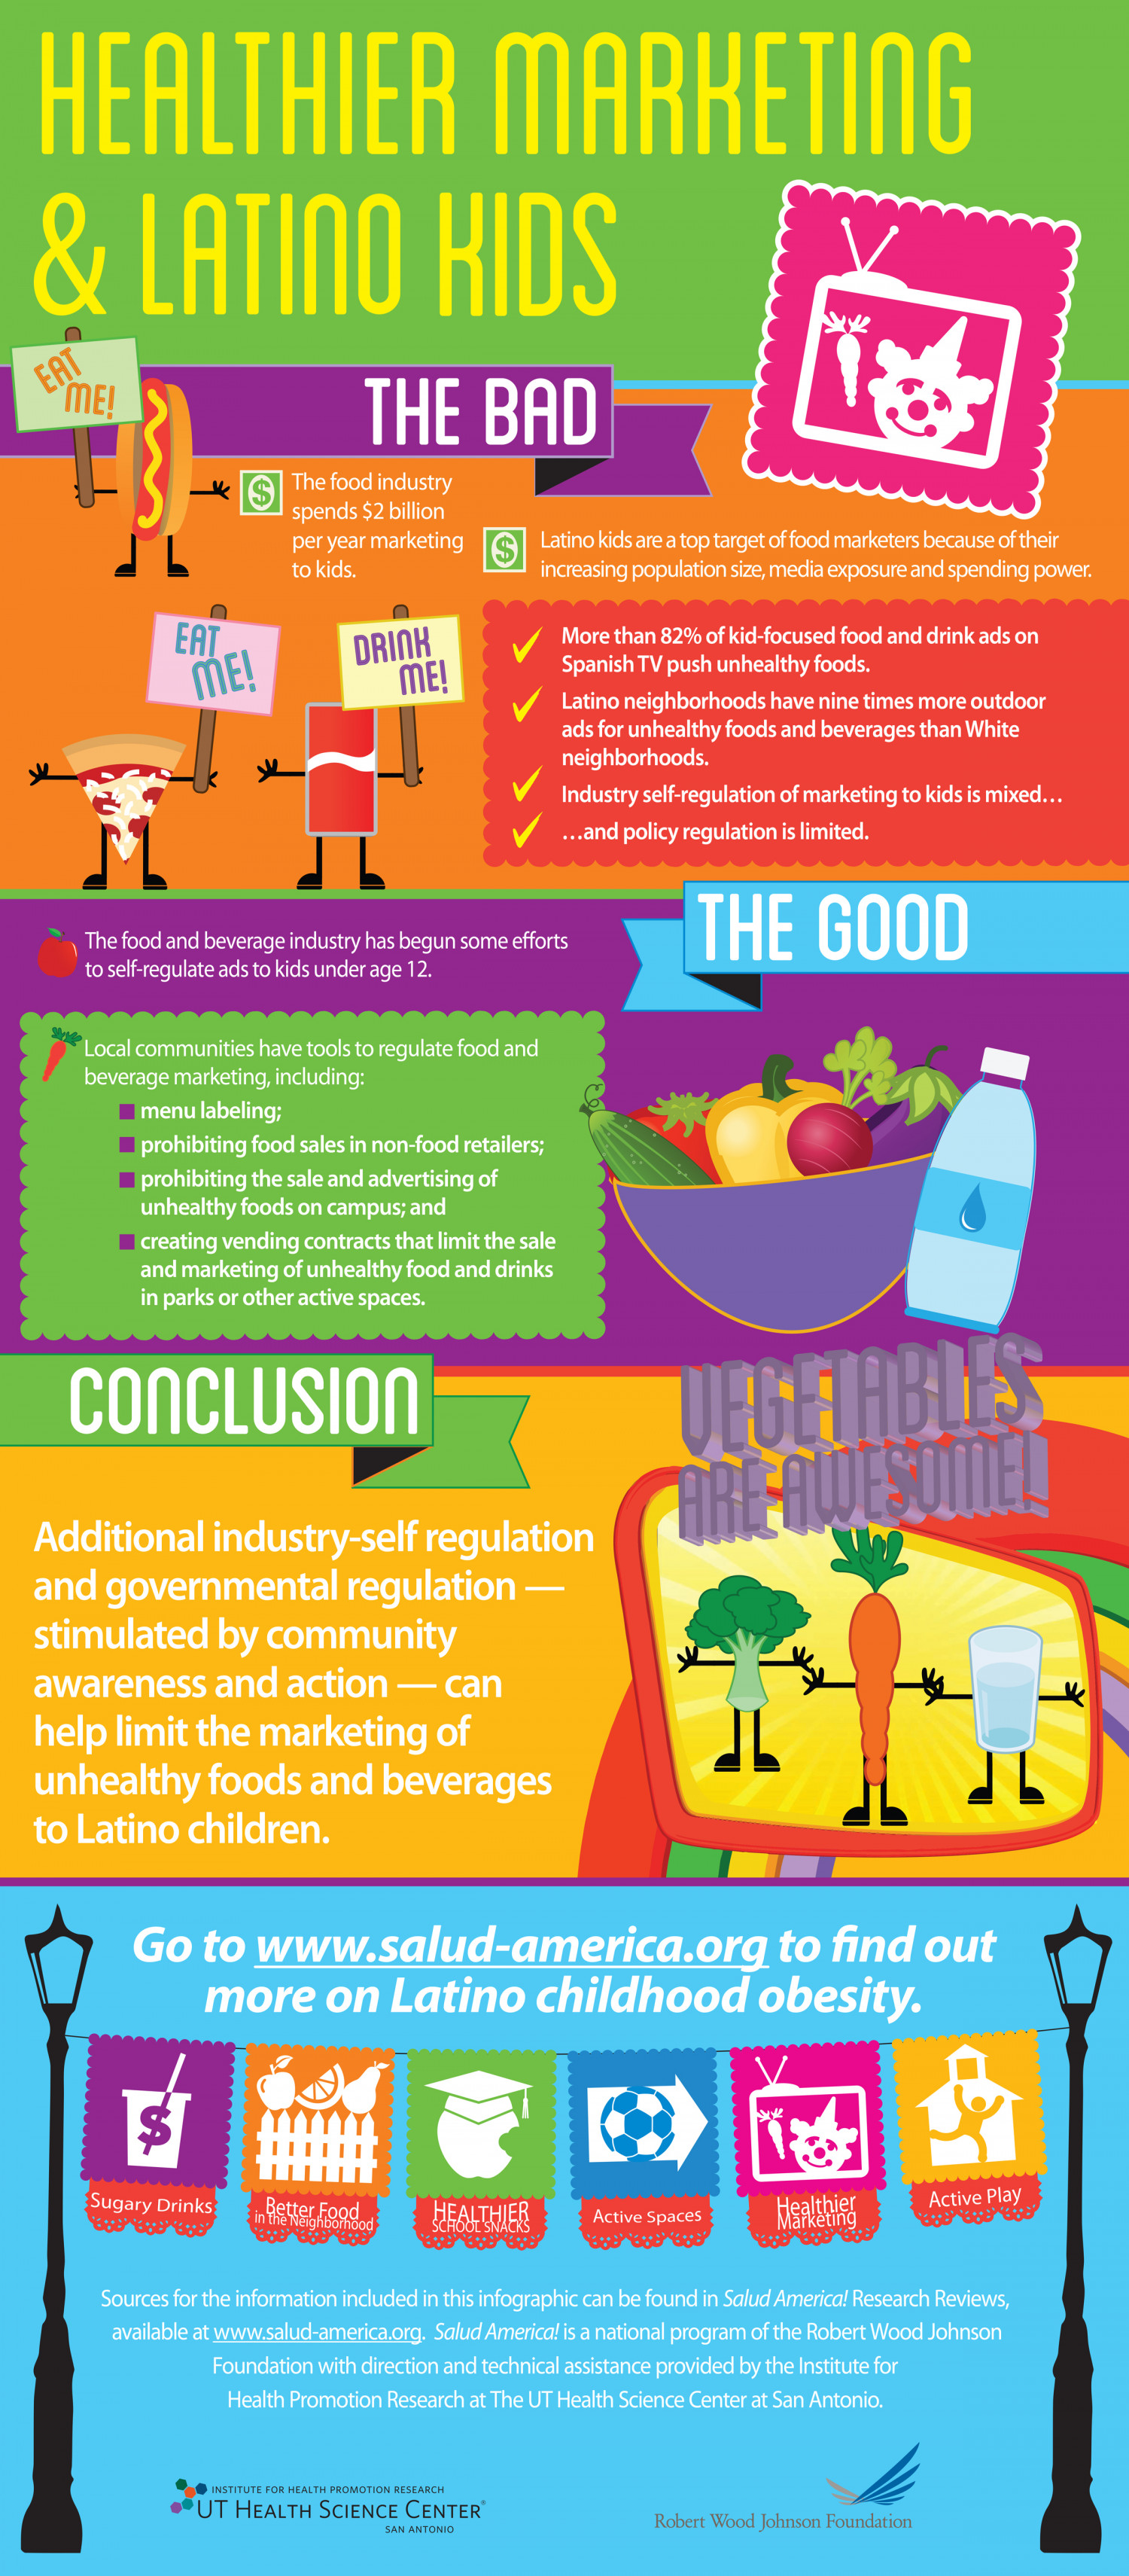 Healthier Marketing & Latino Kids Infographic